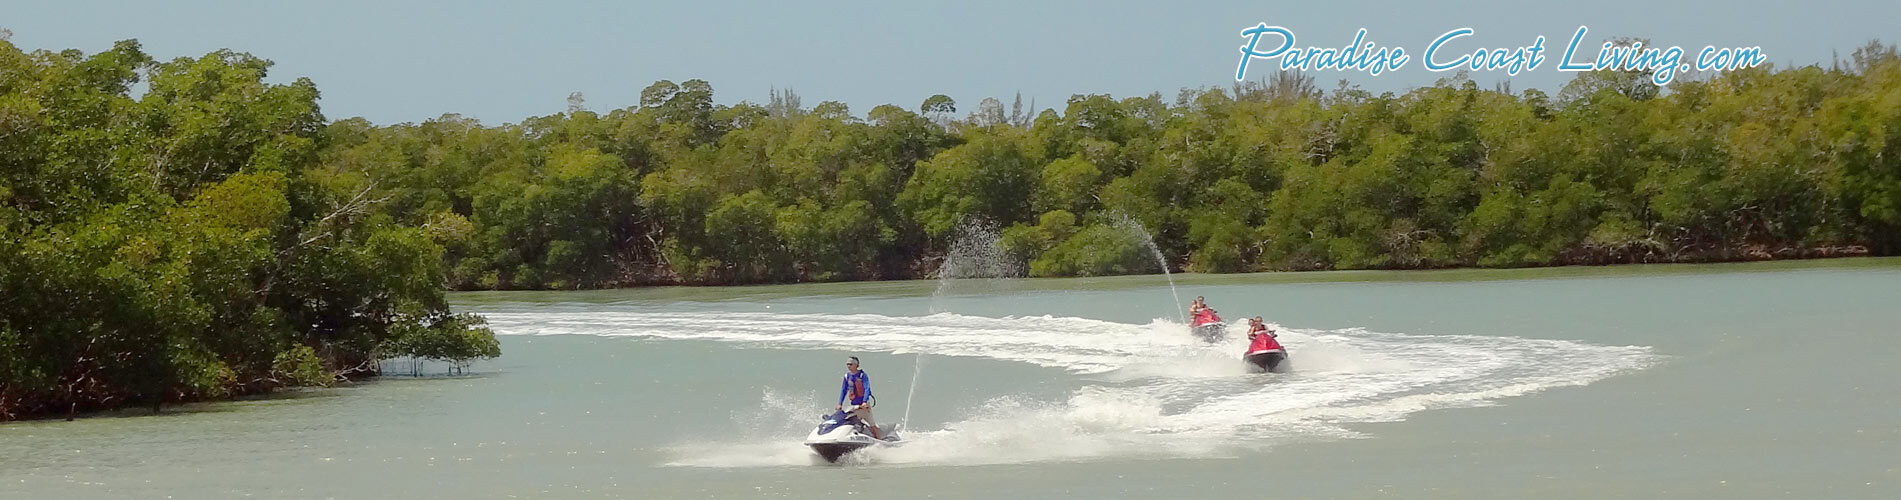 Jet Skiing Fun in SW FL Paradise Living Activities